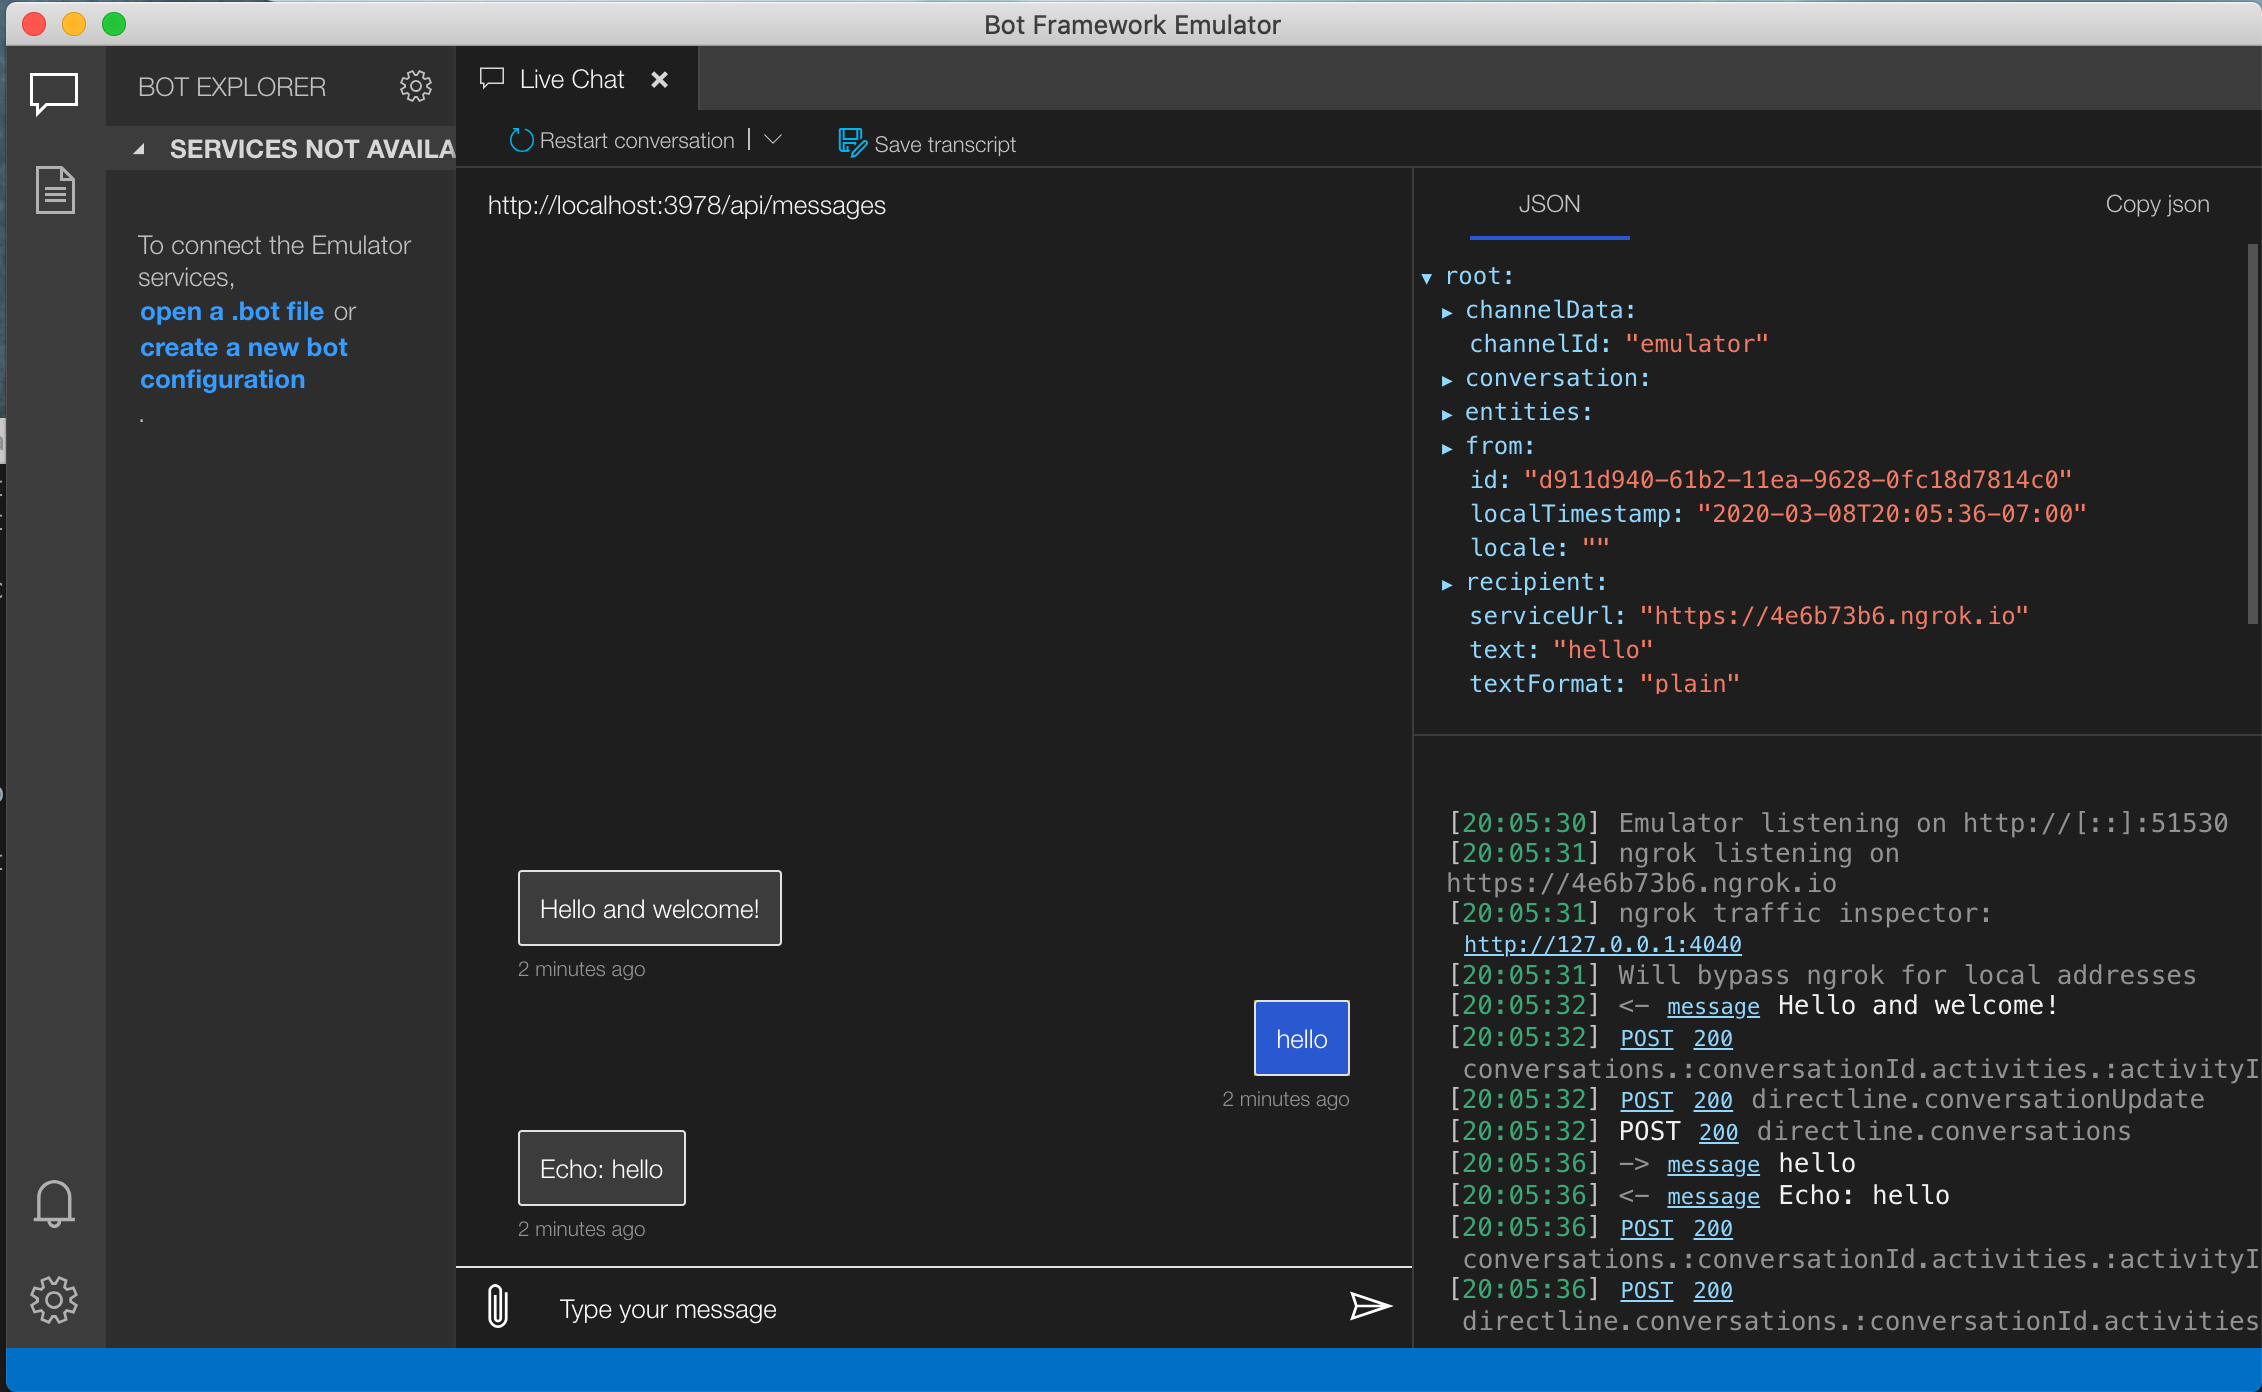 ChatBot connected with emulator